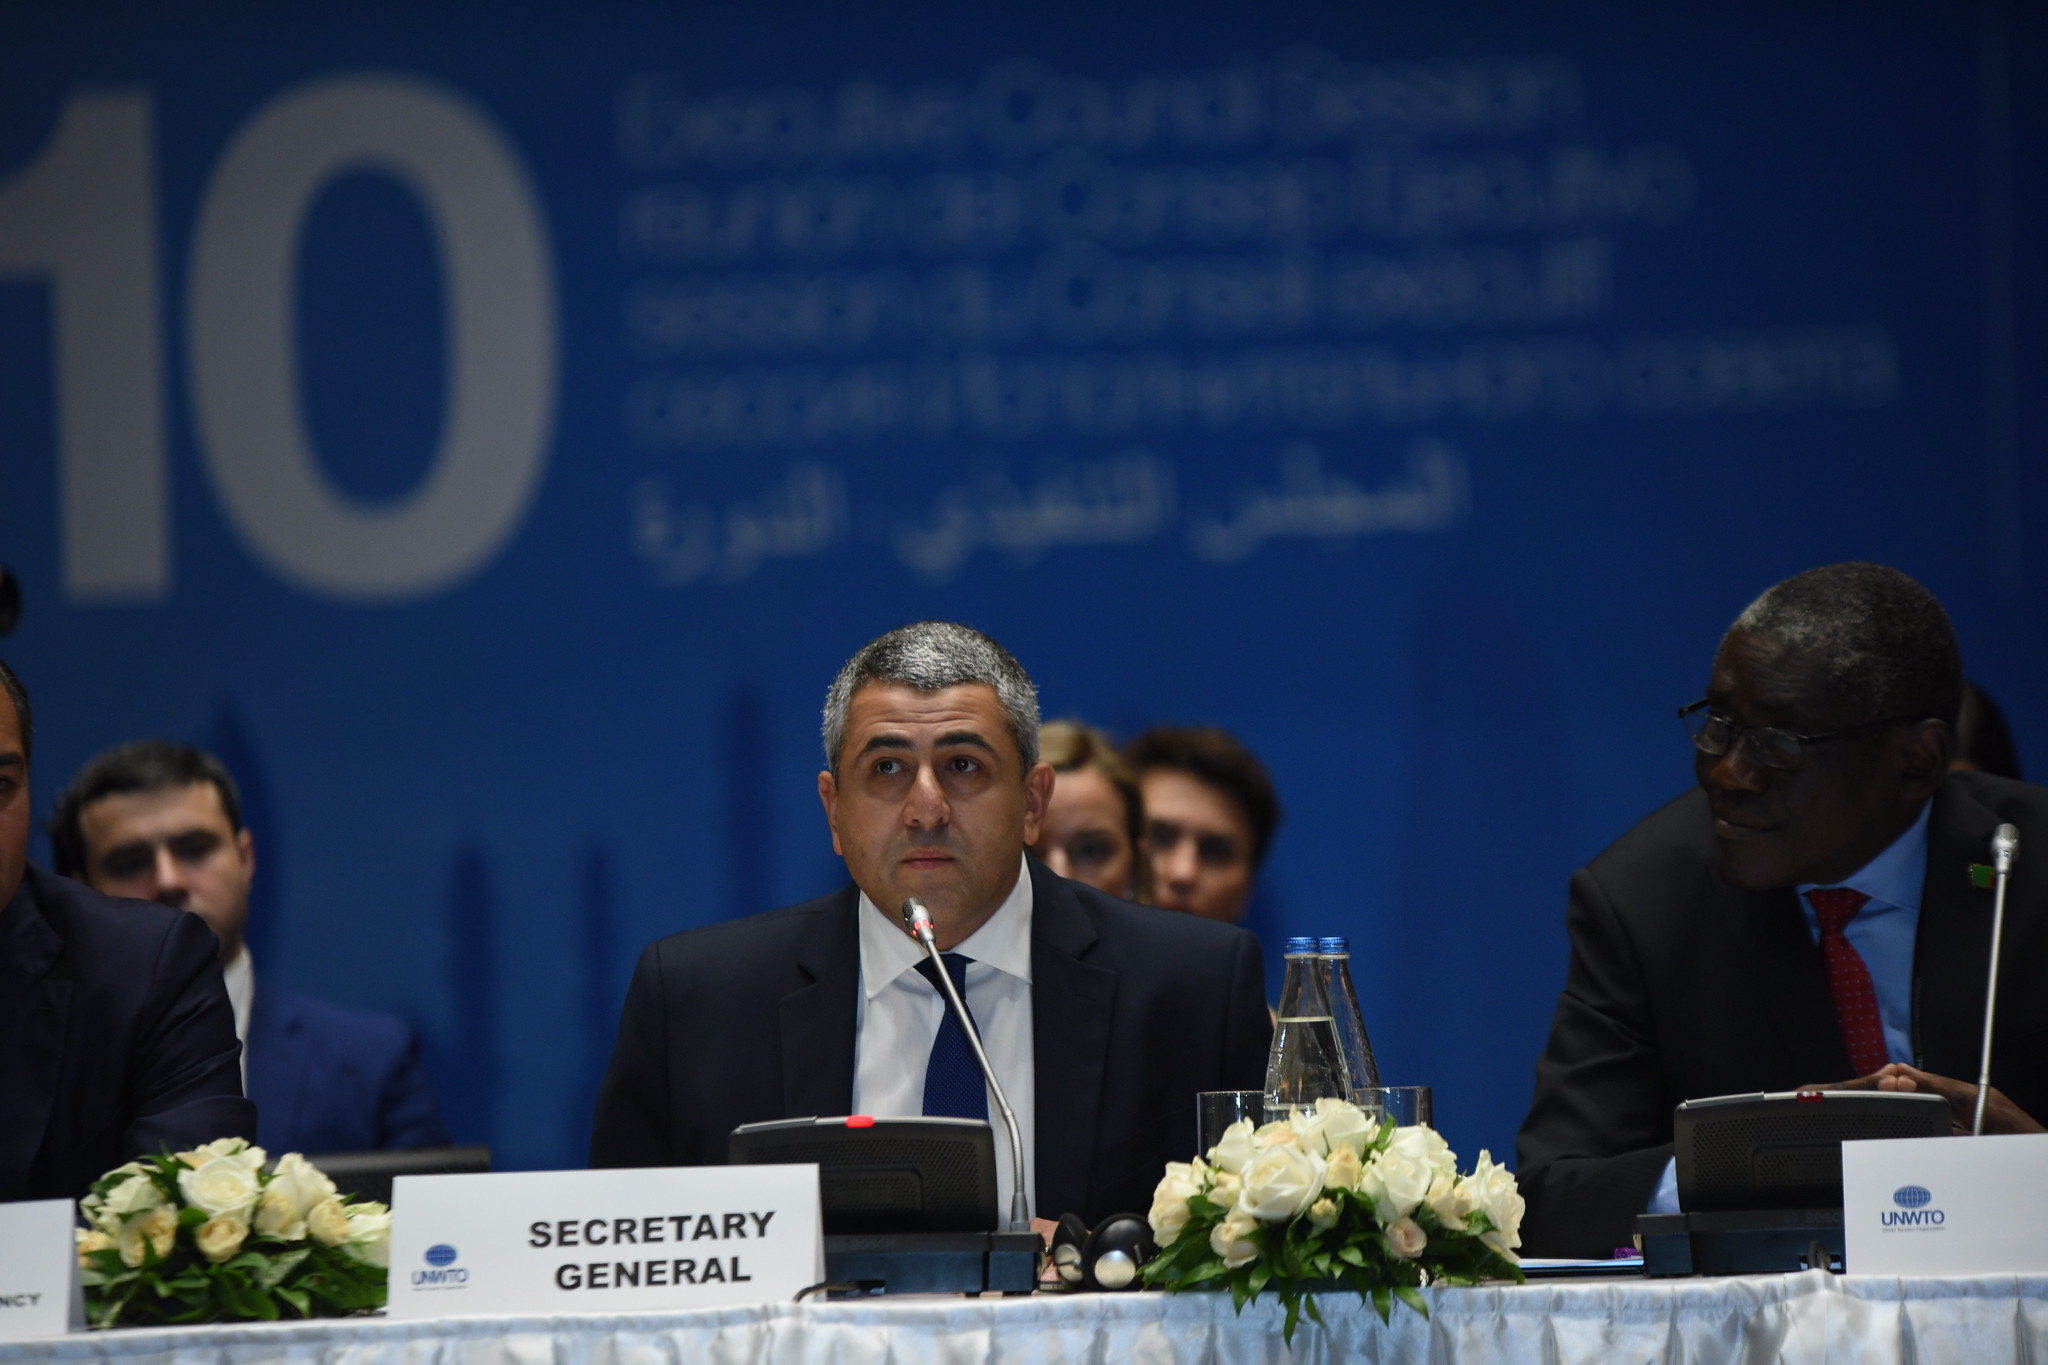 My Priority is to position tourism as a top global sector -Pololikashvili